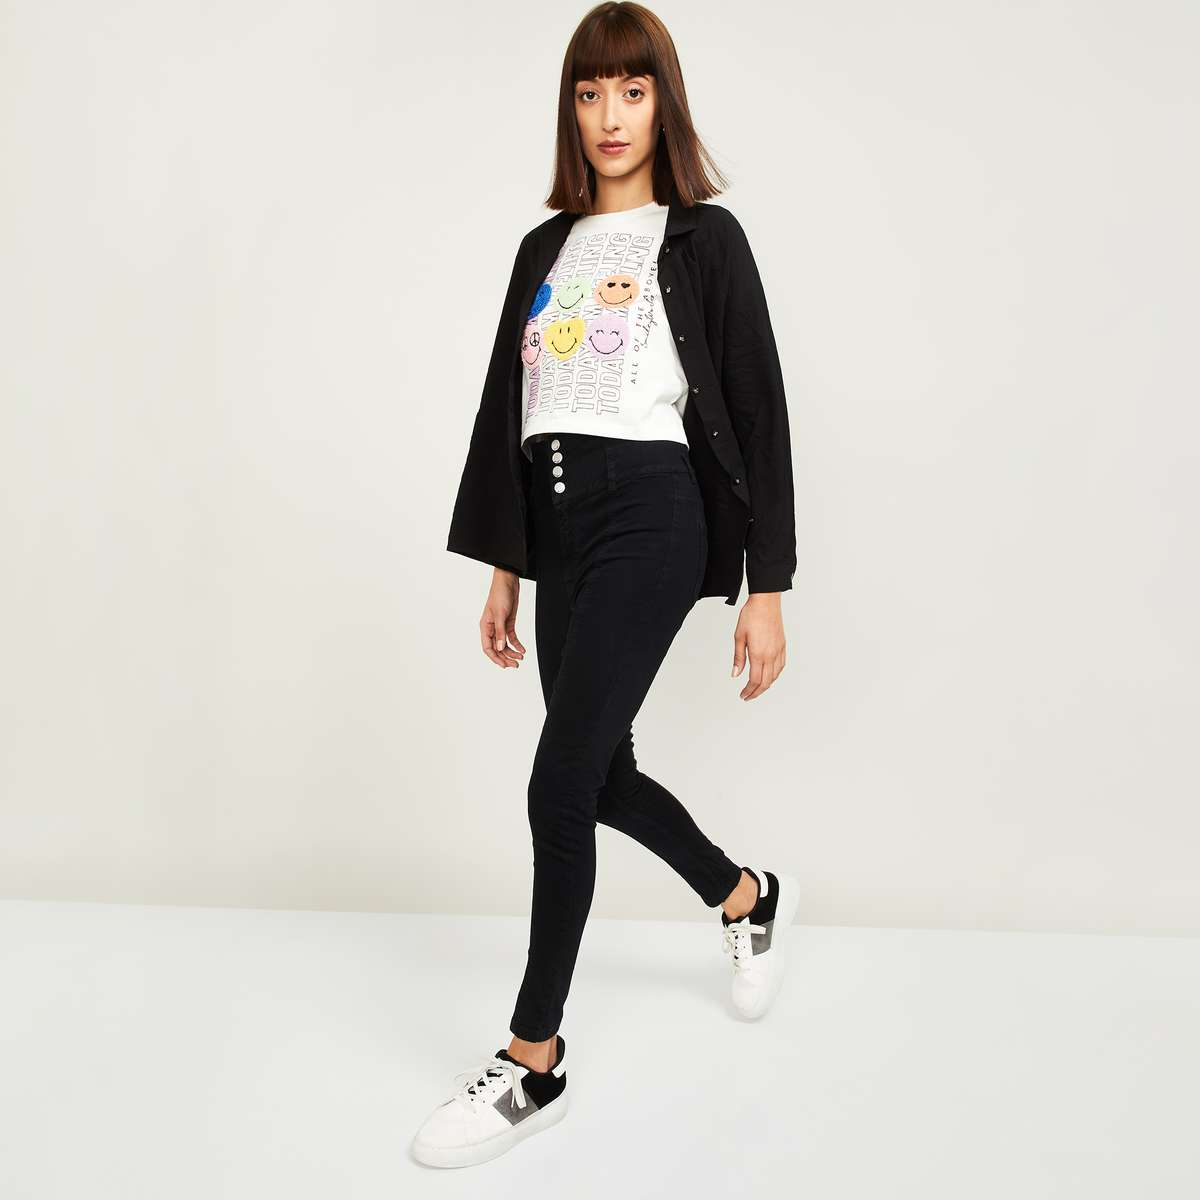 3.GINGER Women Solid Skinny Fit Jeans